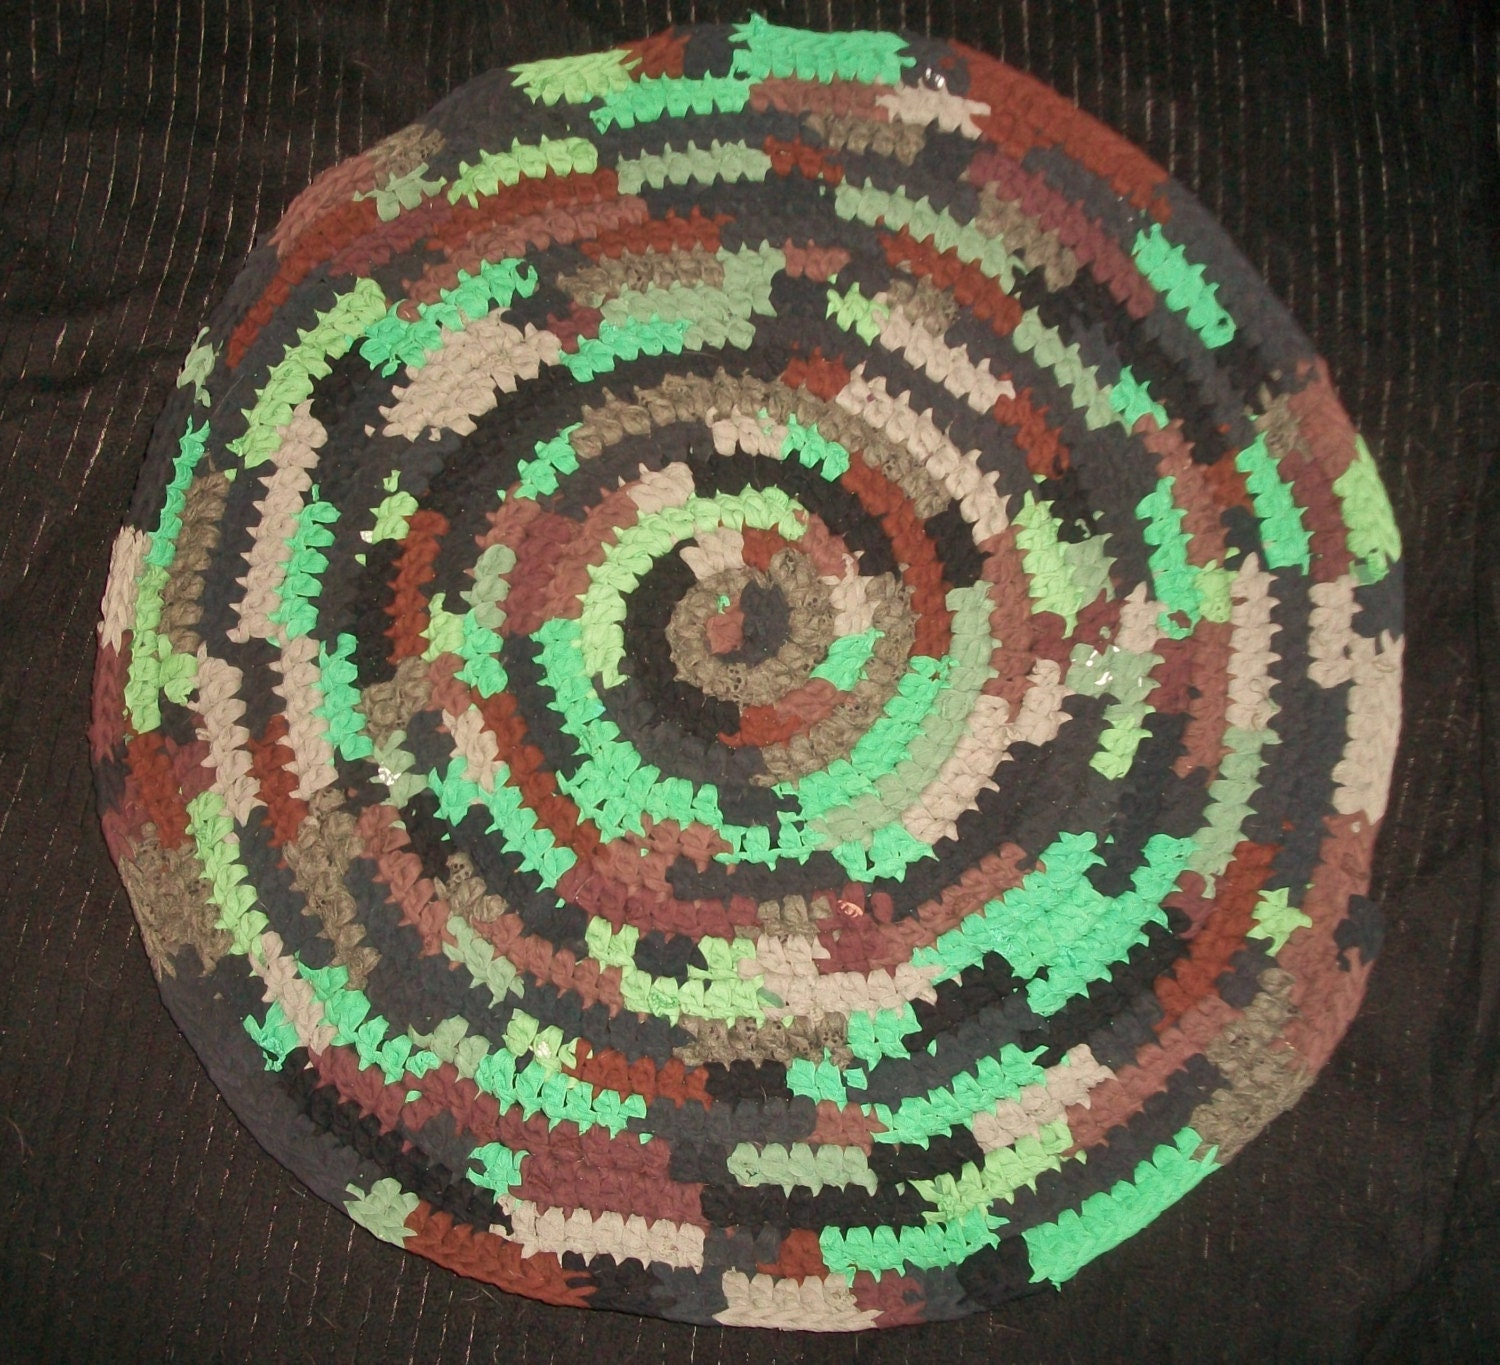 Camouflage Round Rag Rug Camo In Woodsy Brown Tan Green